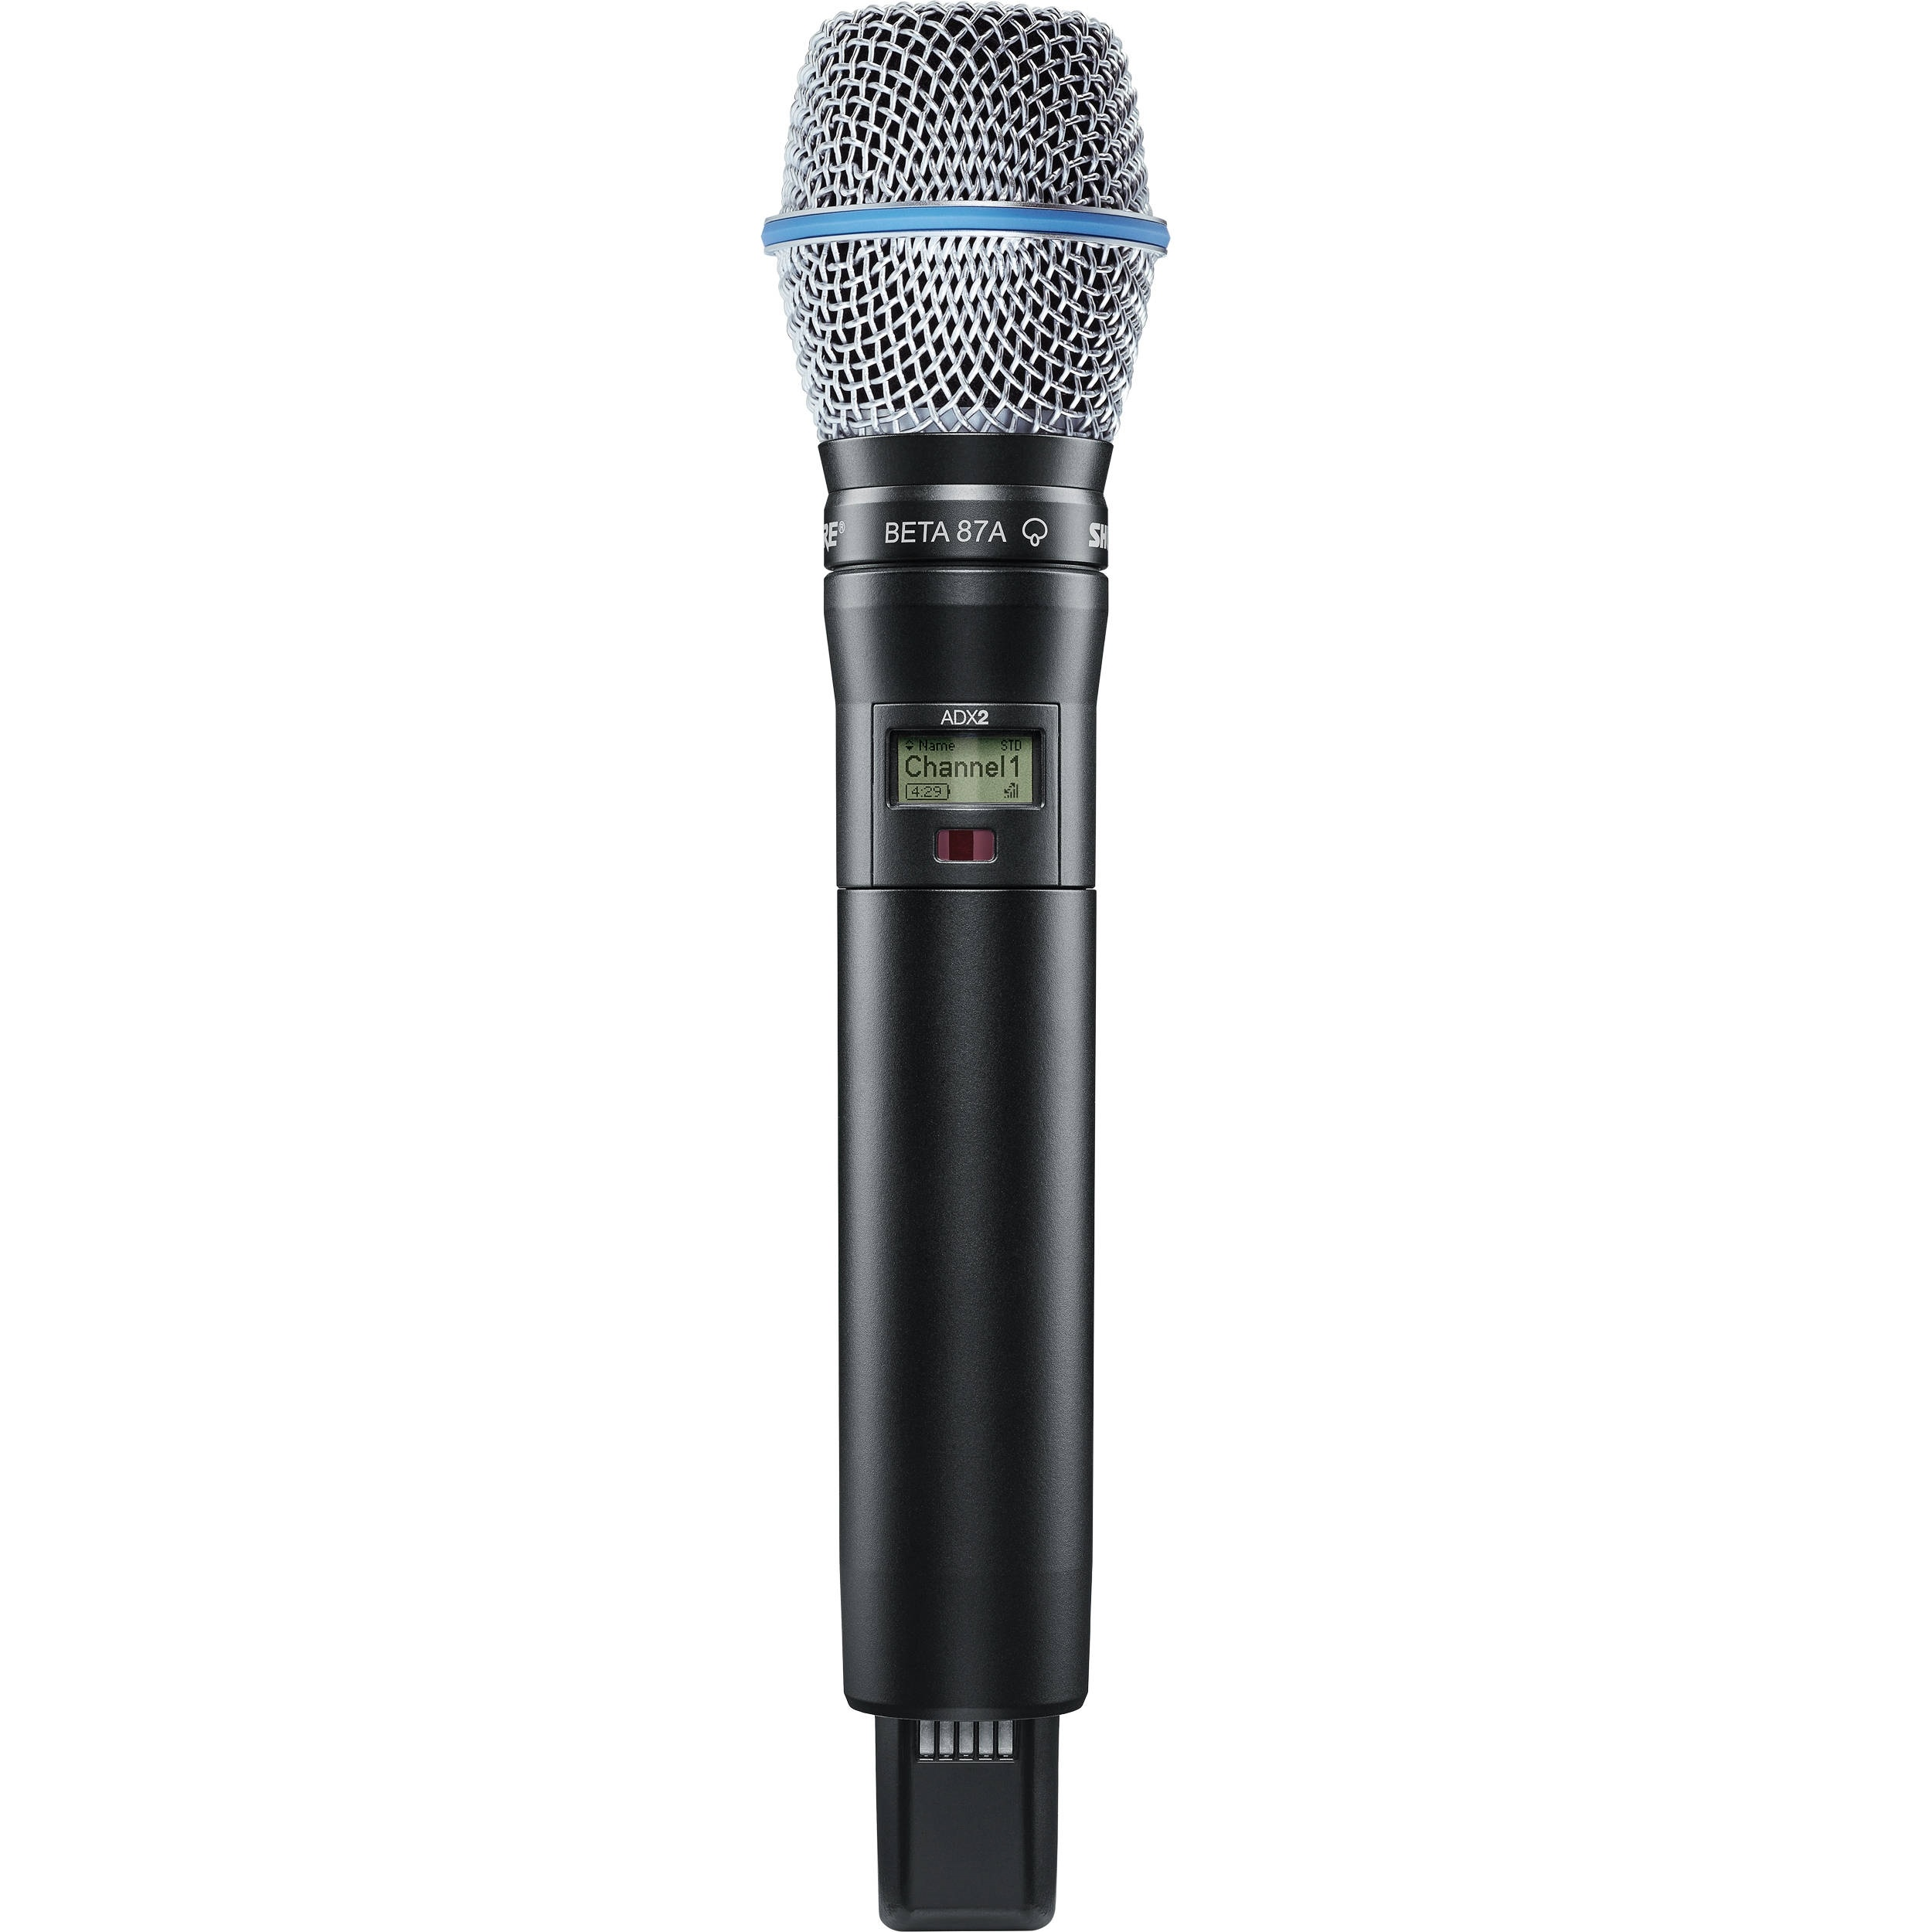 Shure ADX2/B87A Digital Handheld Wireless Microphone Transmitter with Beta 87A Capsule